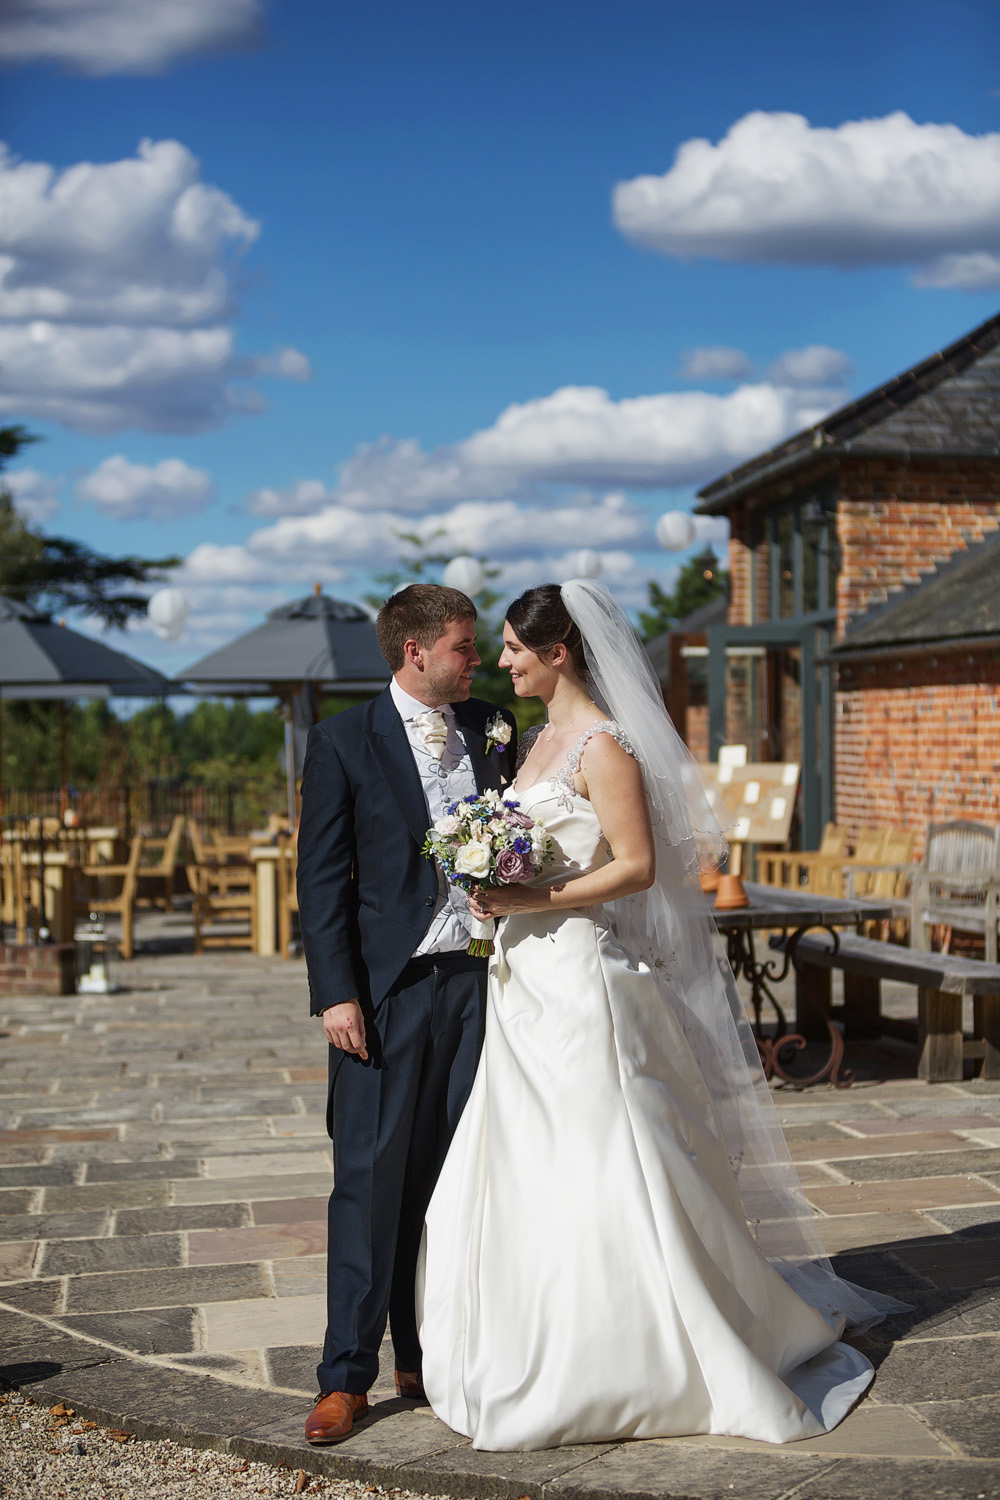 Wasing_Park_Wedding_Photographer_Reading_Berkshire_133.jpg